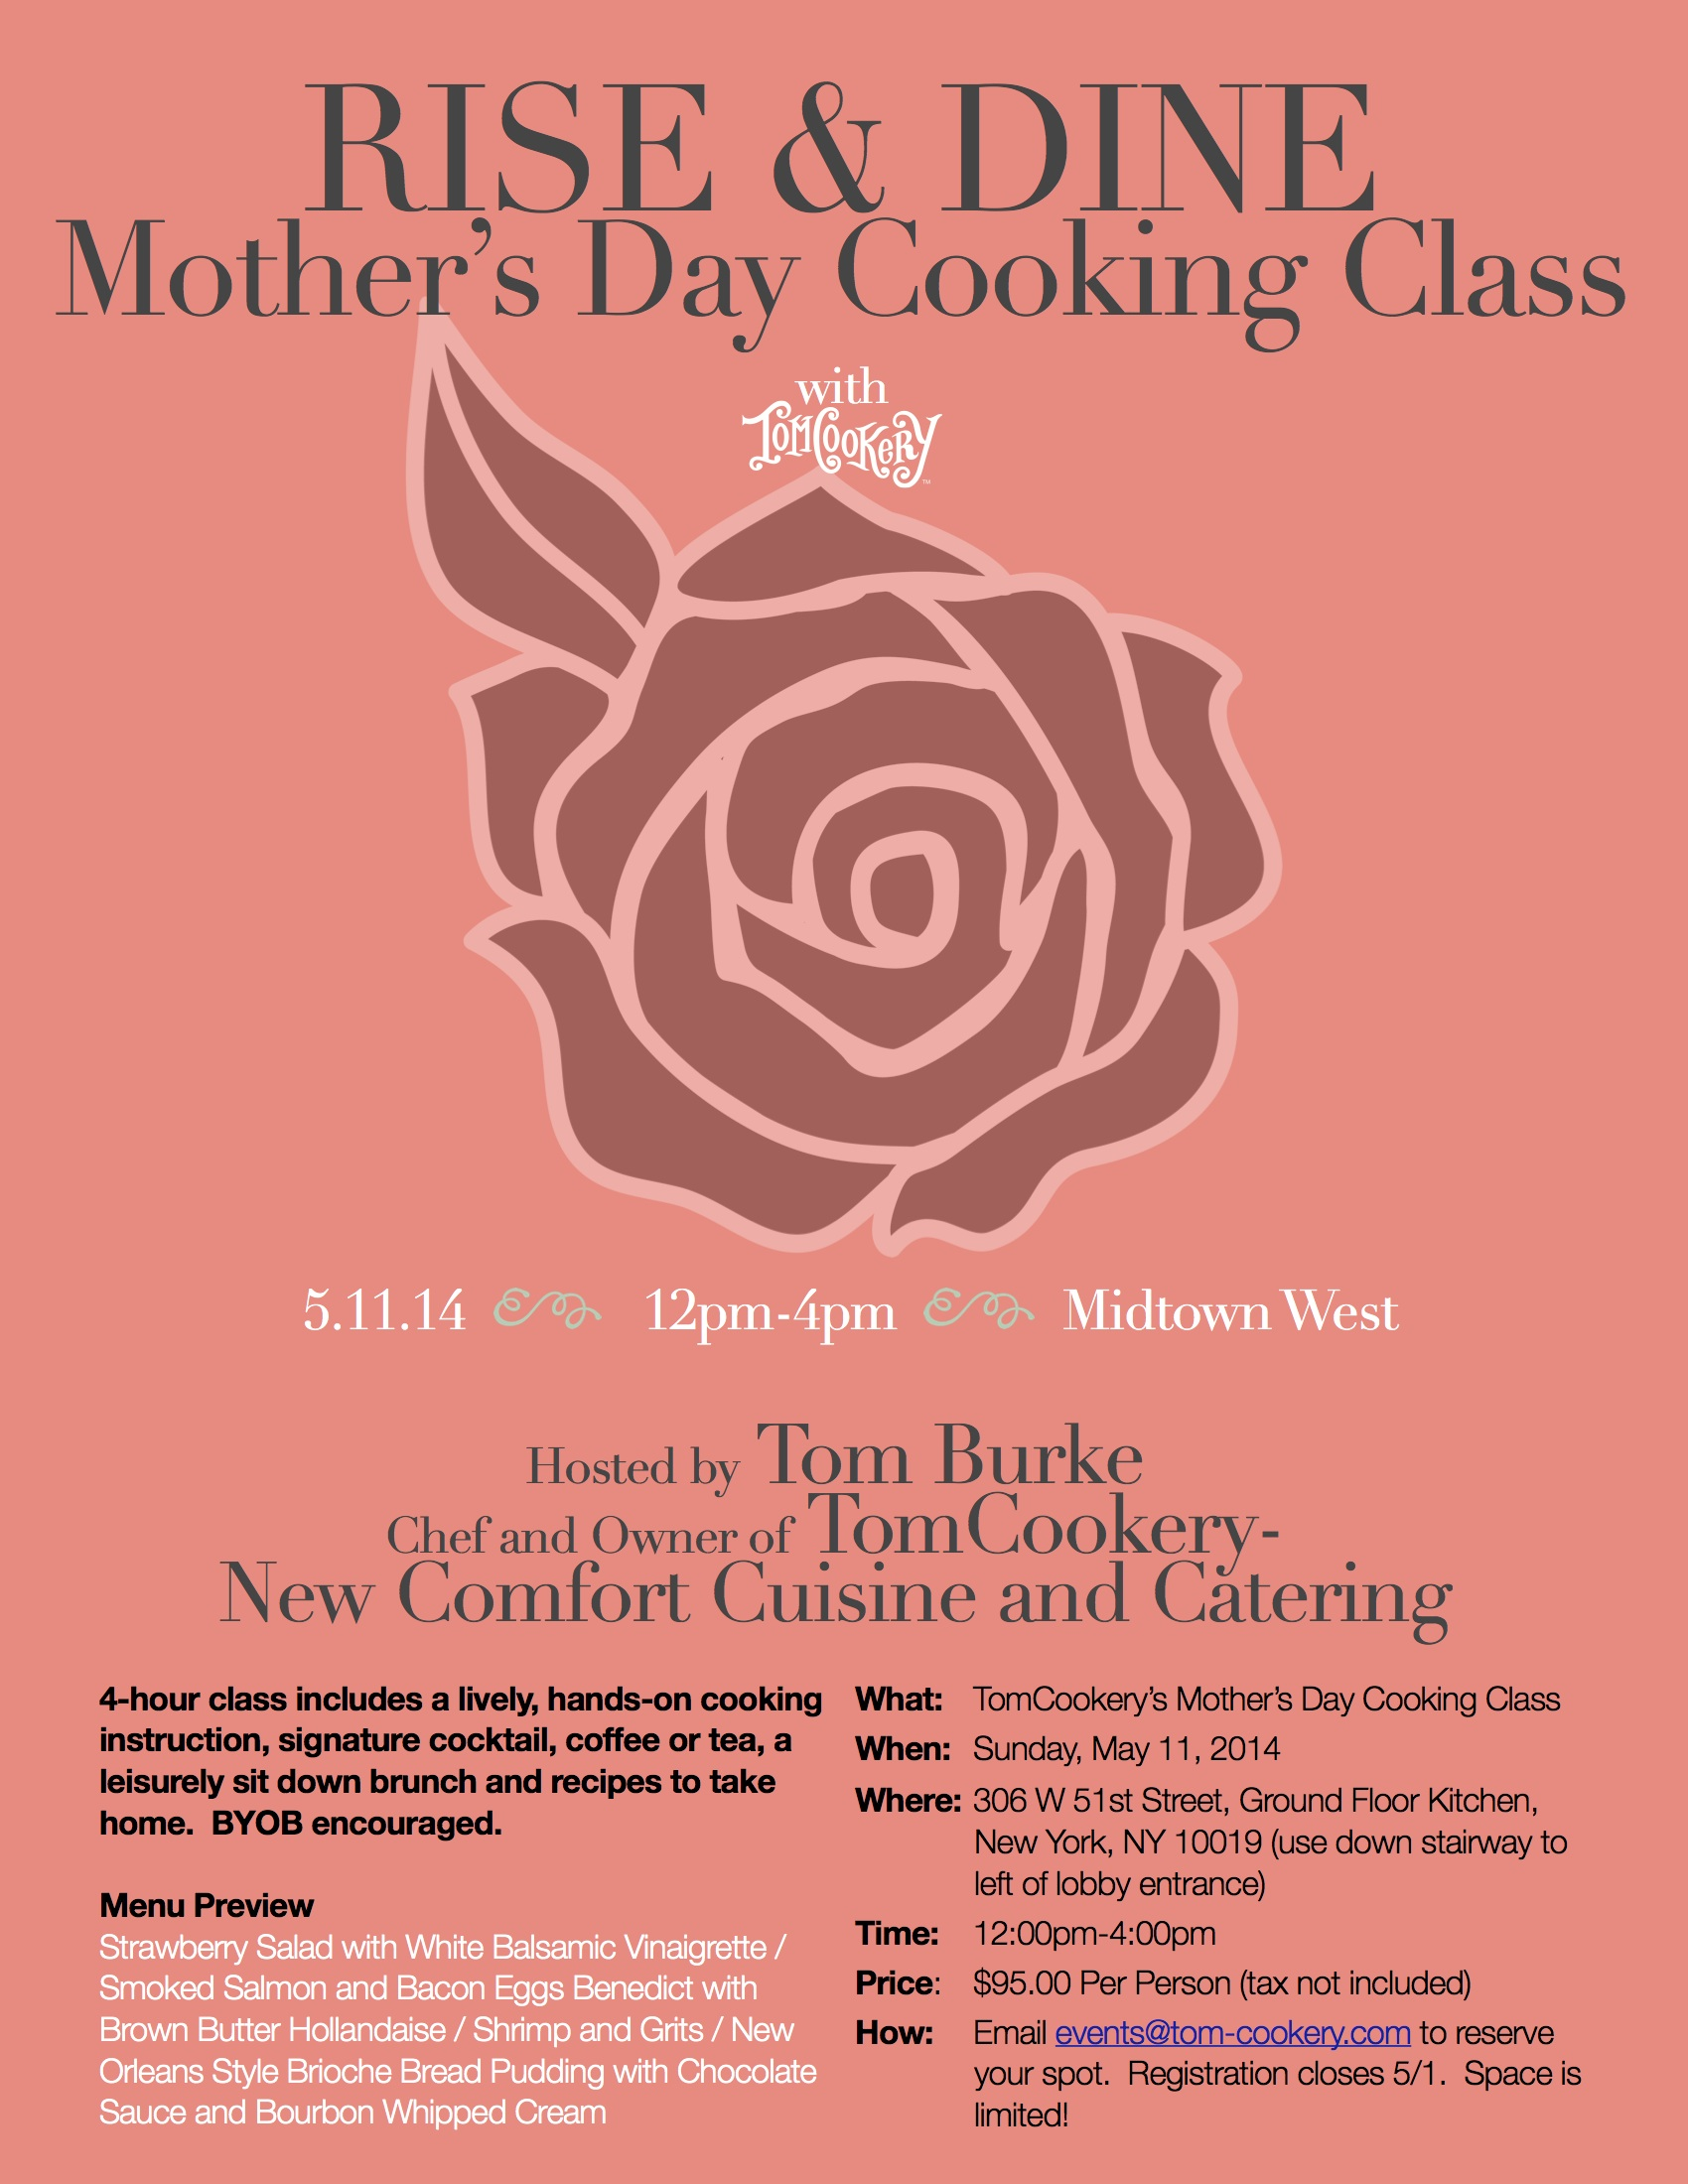 Mother's Day Cooking Class Flyer 5:11 JPEG